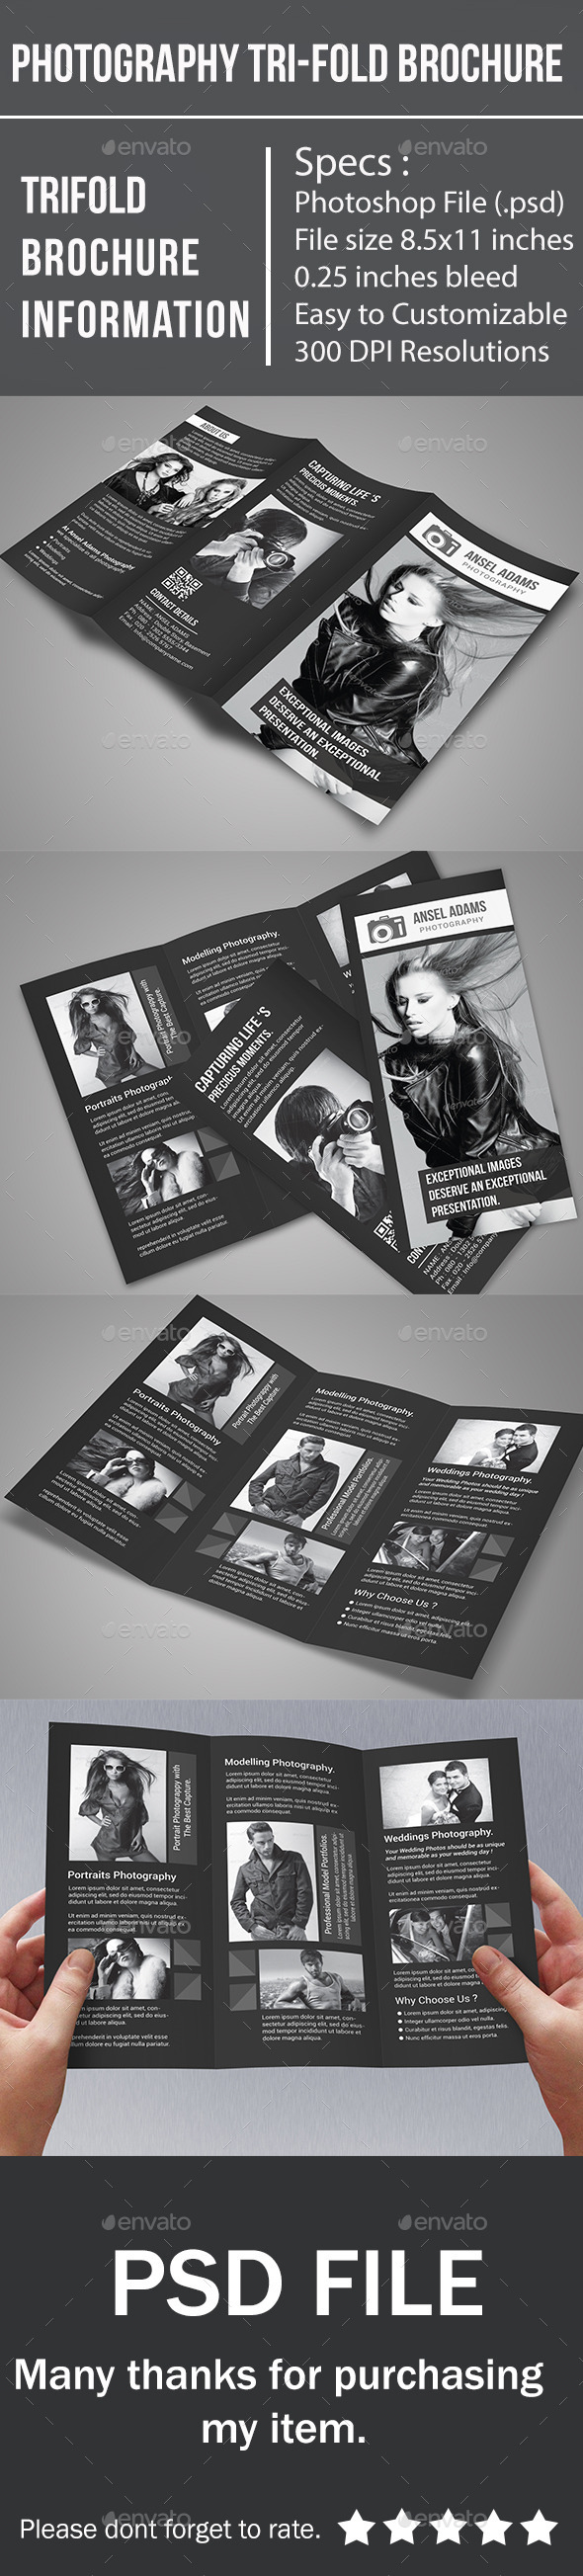 Photography Tri-Fold Brochure